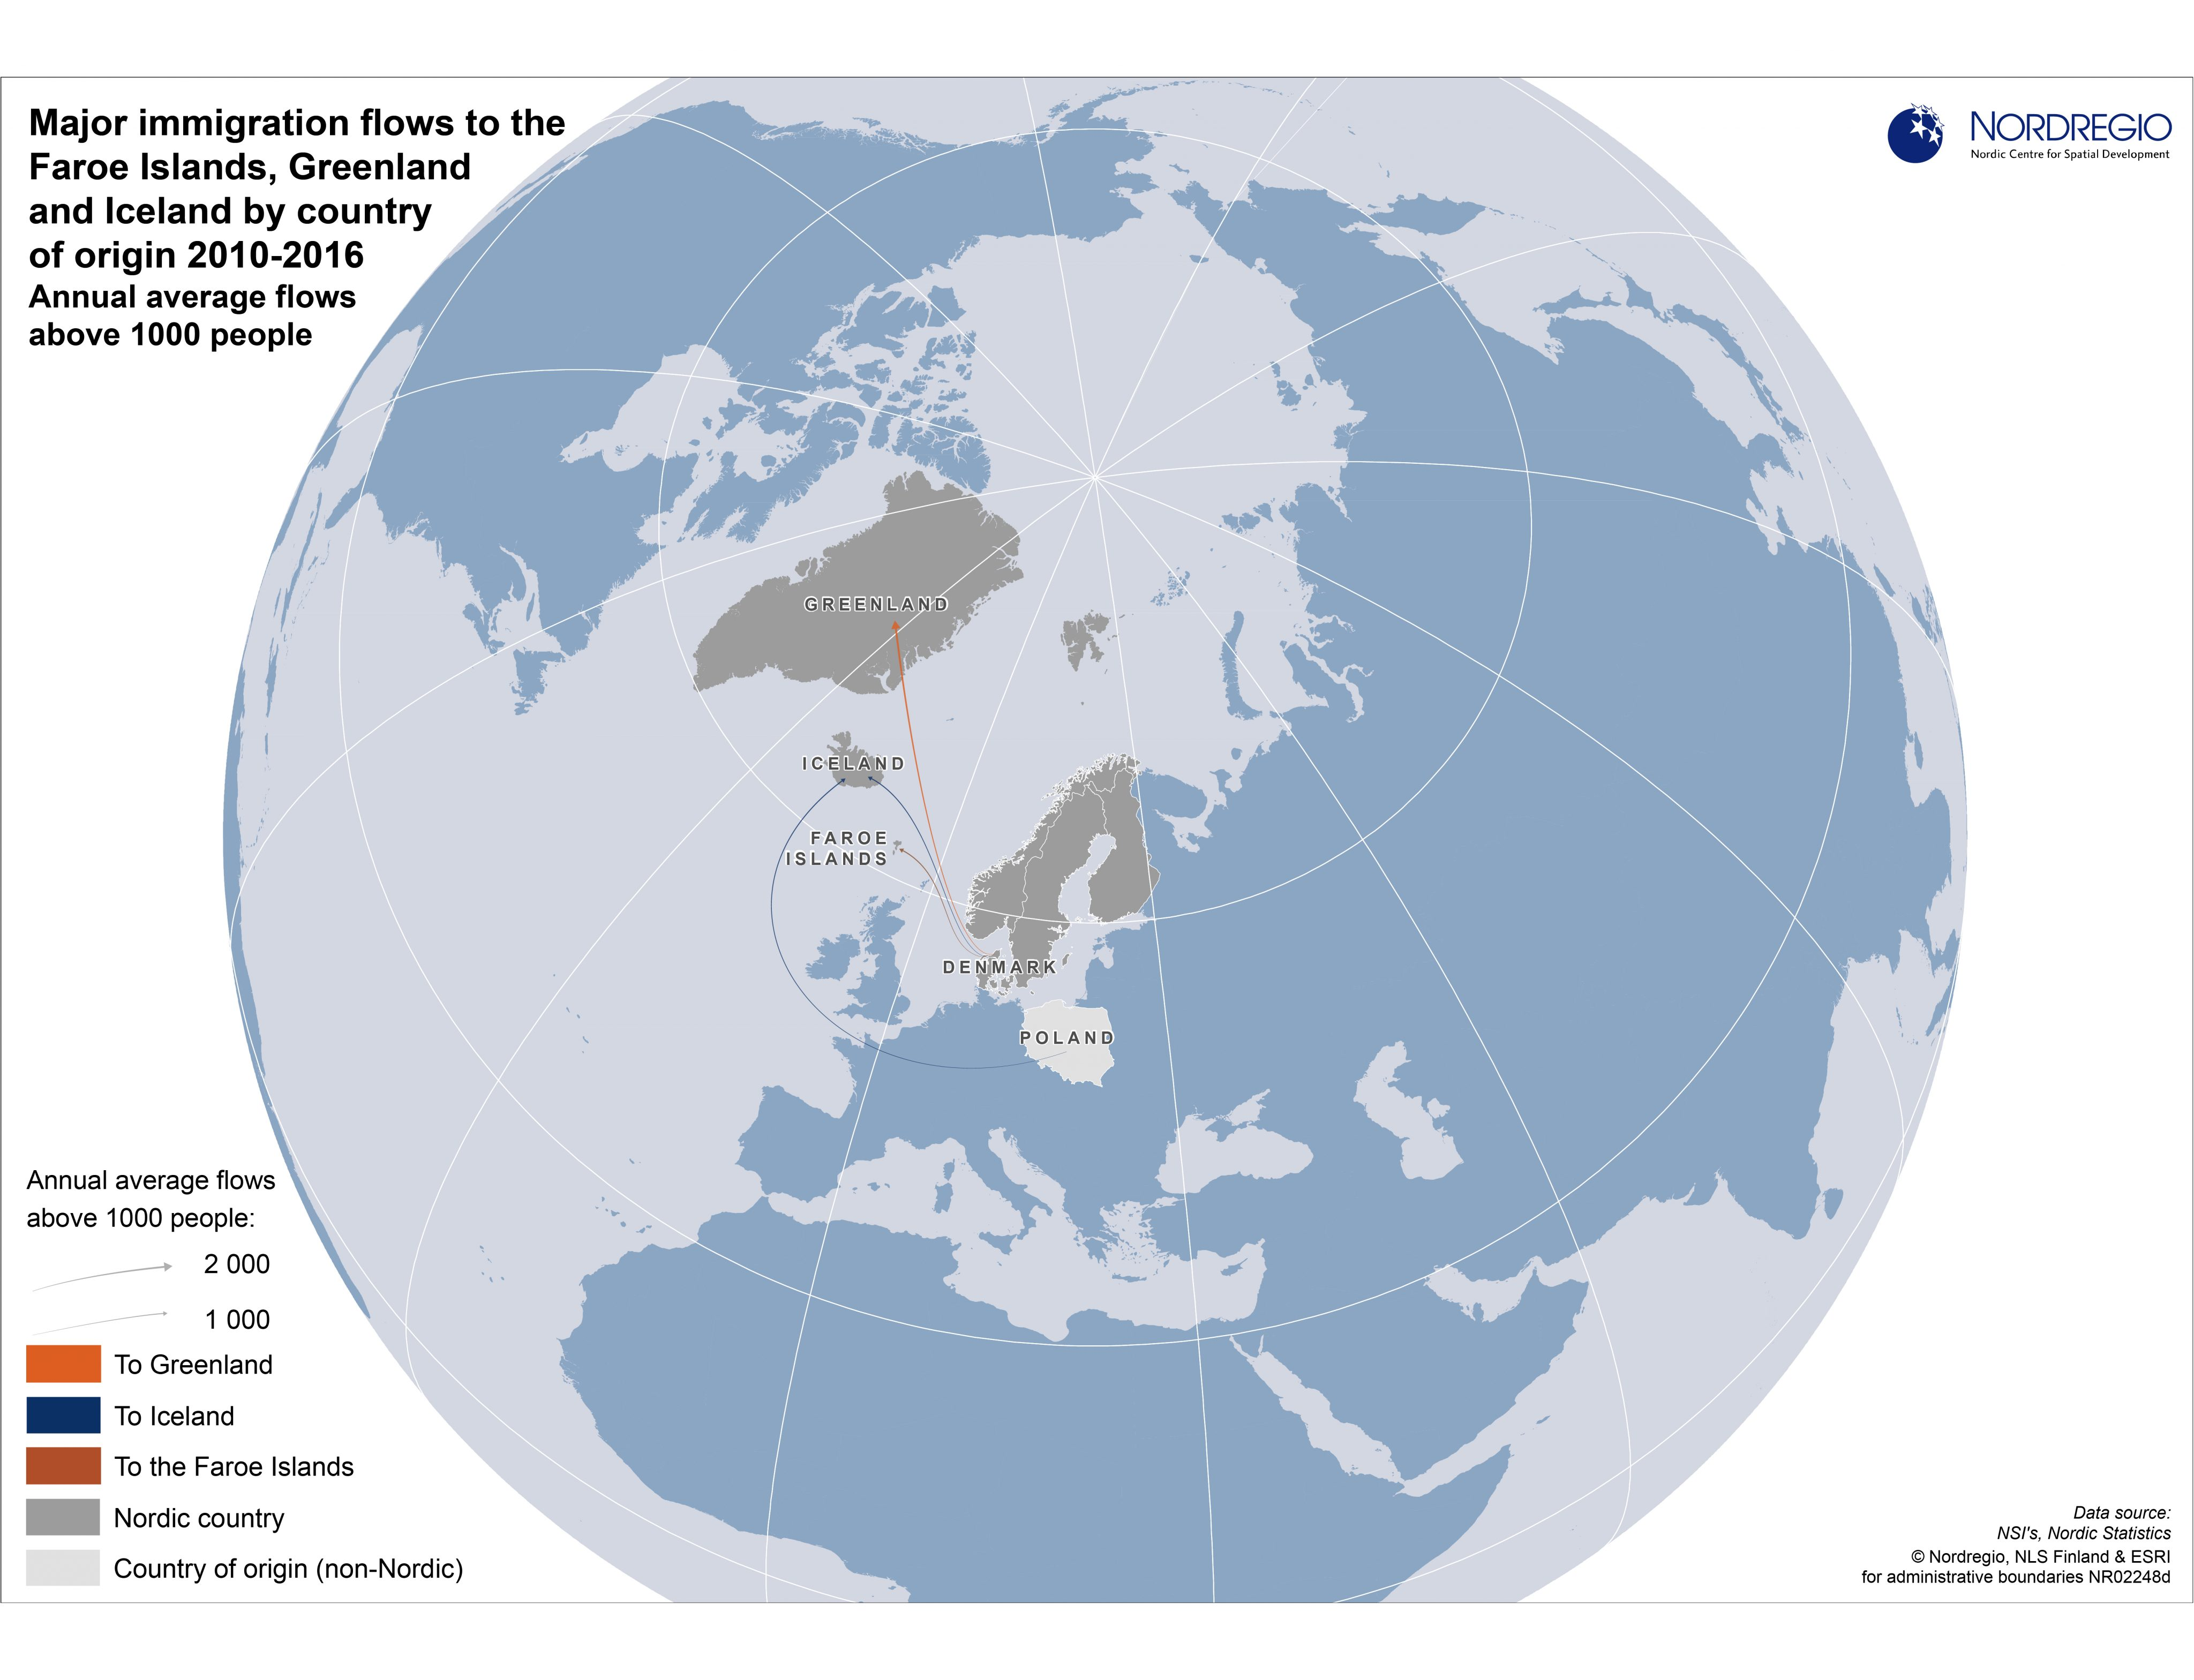 Iceland And Greenland World Map.Major Immigration Flows To The Faroe Islands Greenland And Iceland